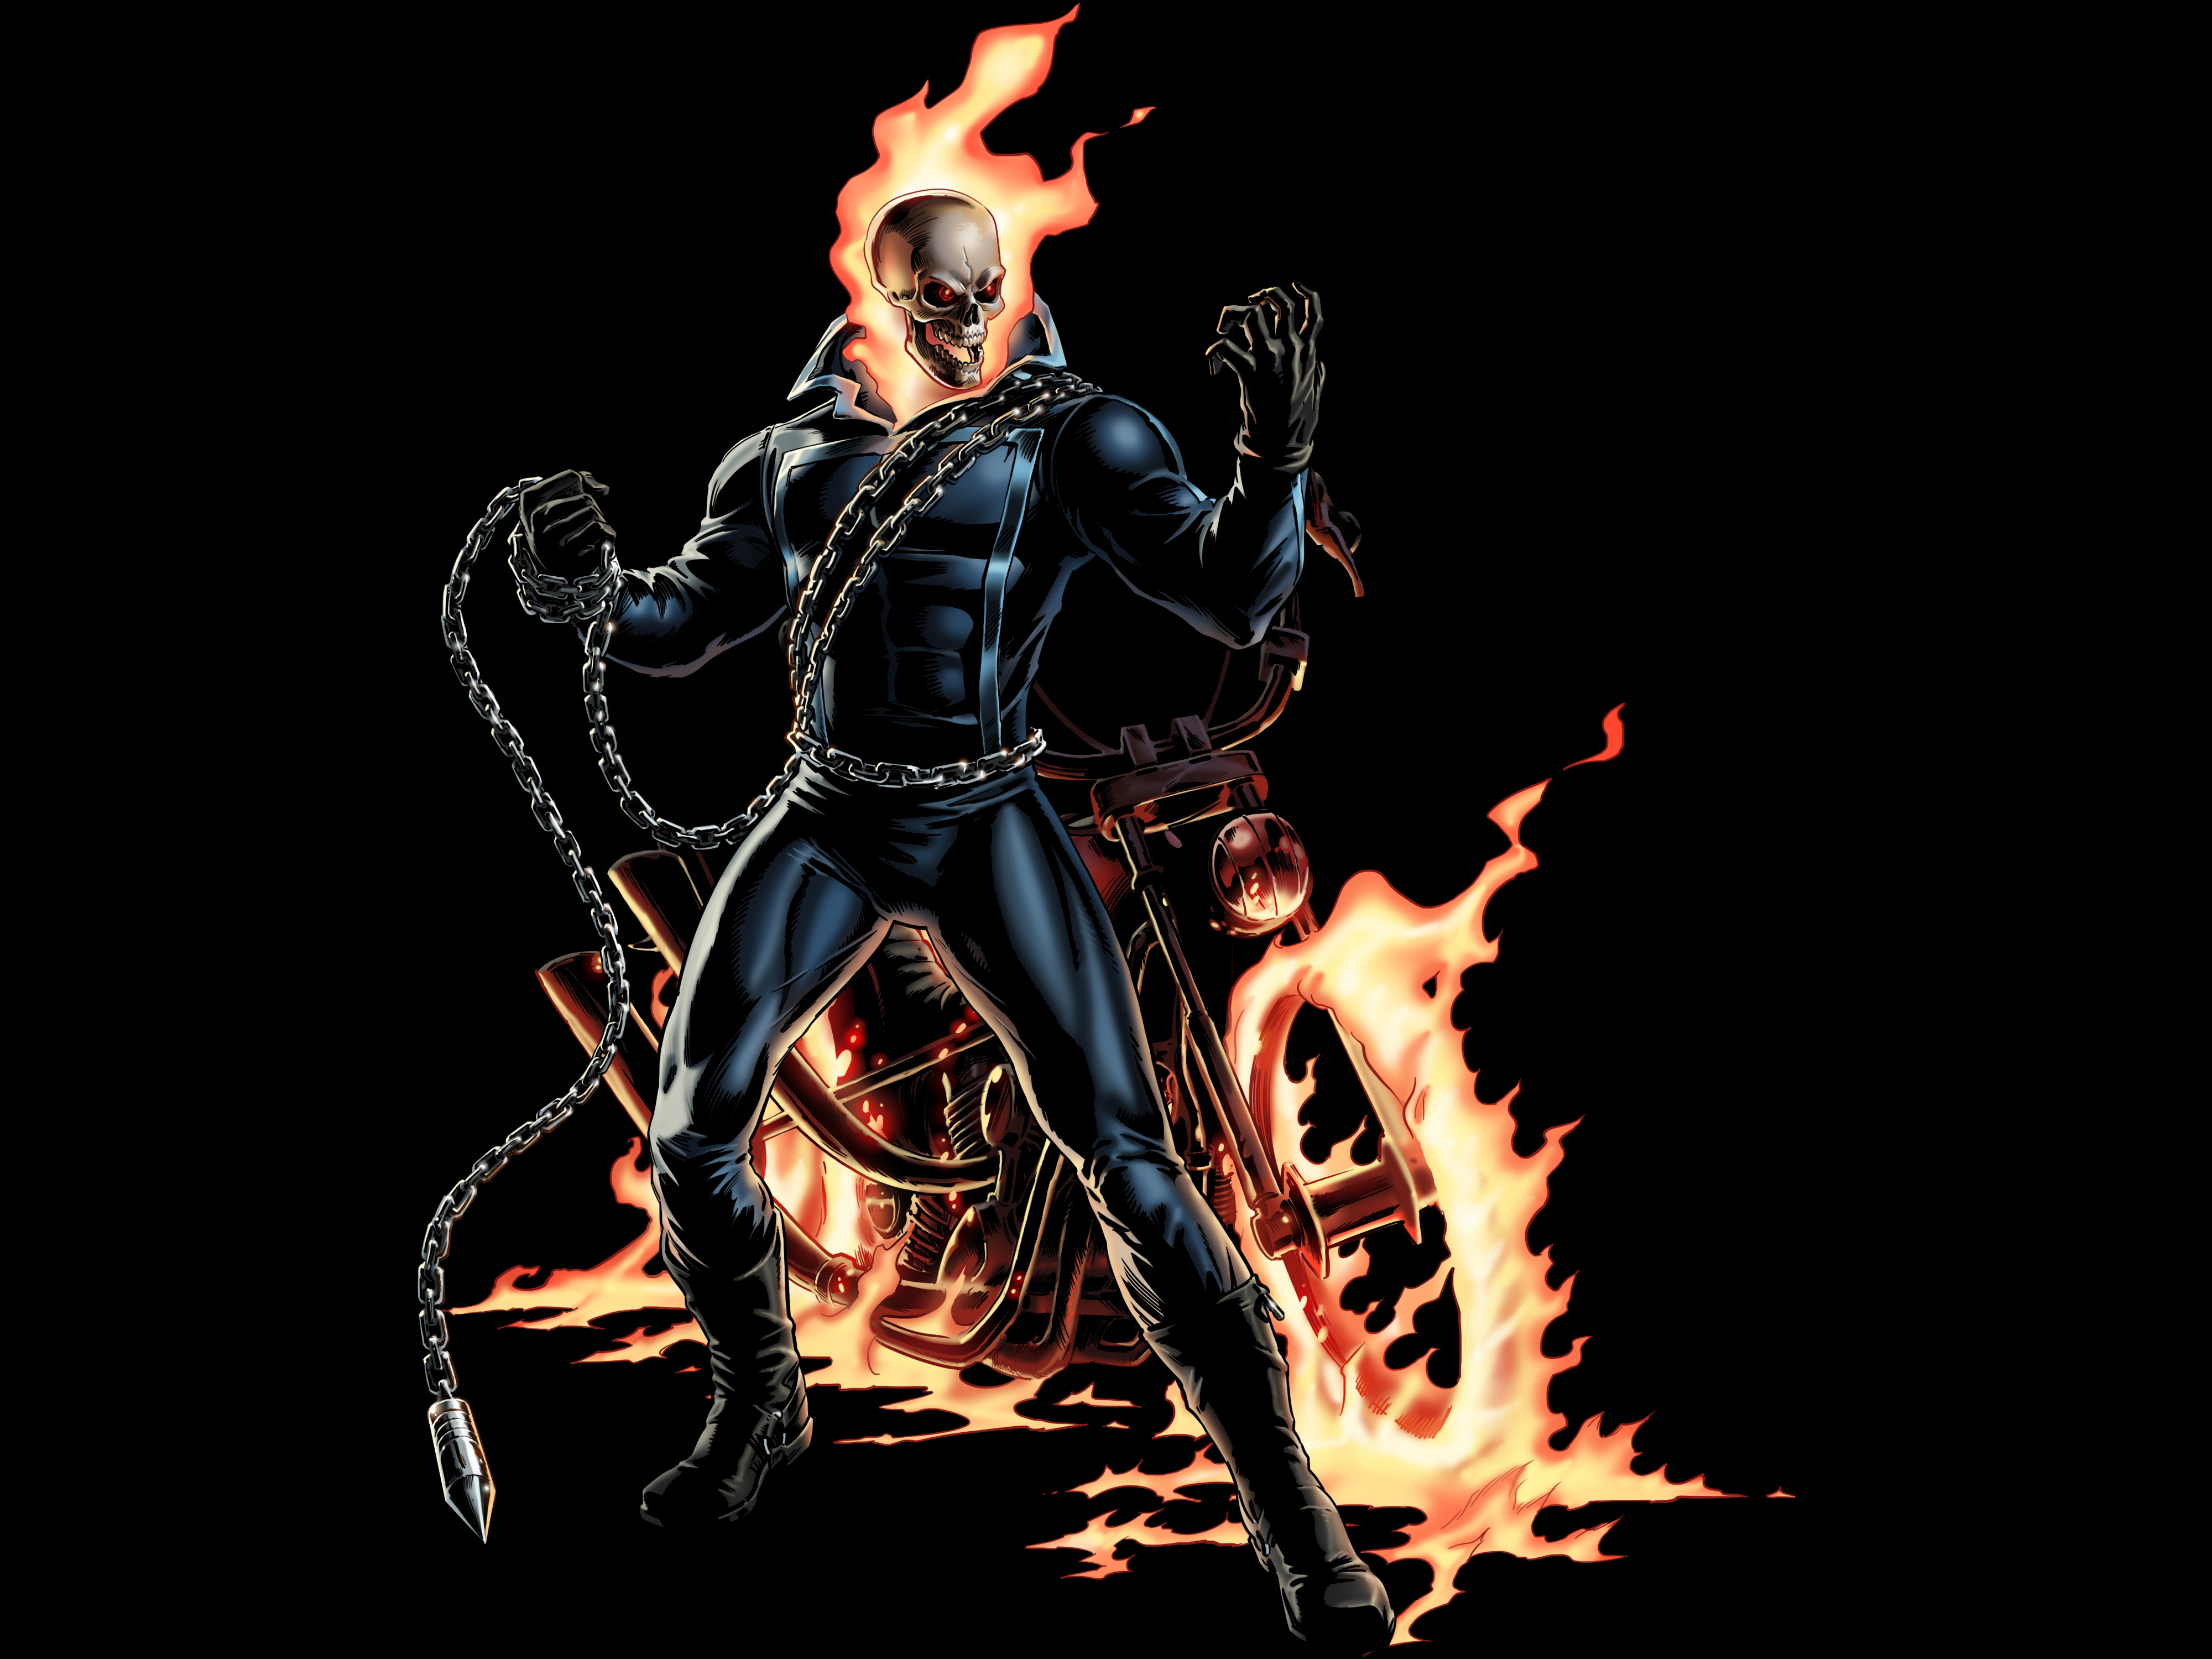 26 4k ultra hd ghost rider wallpapers | background images